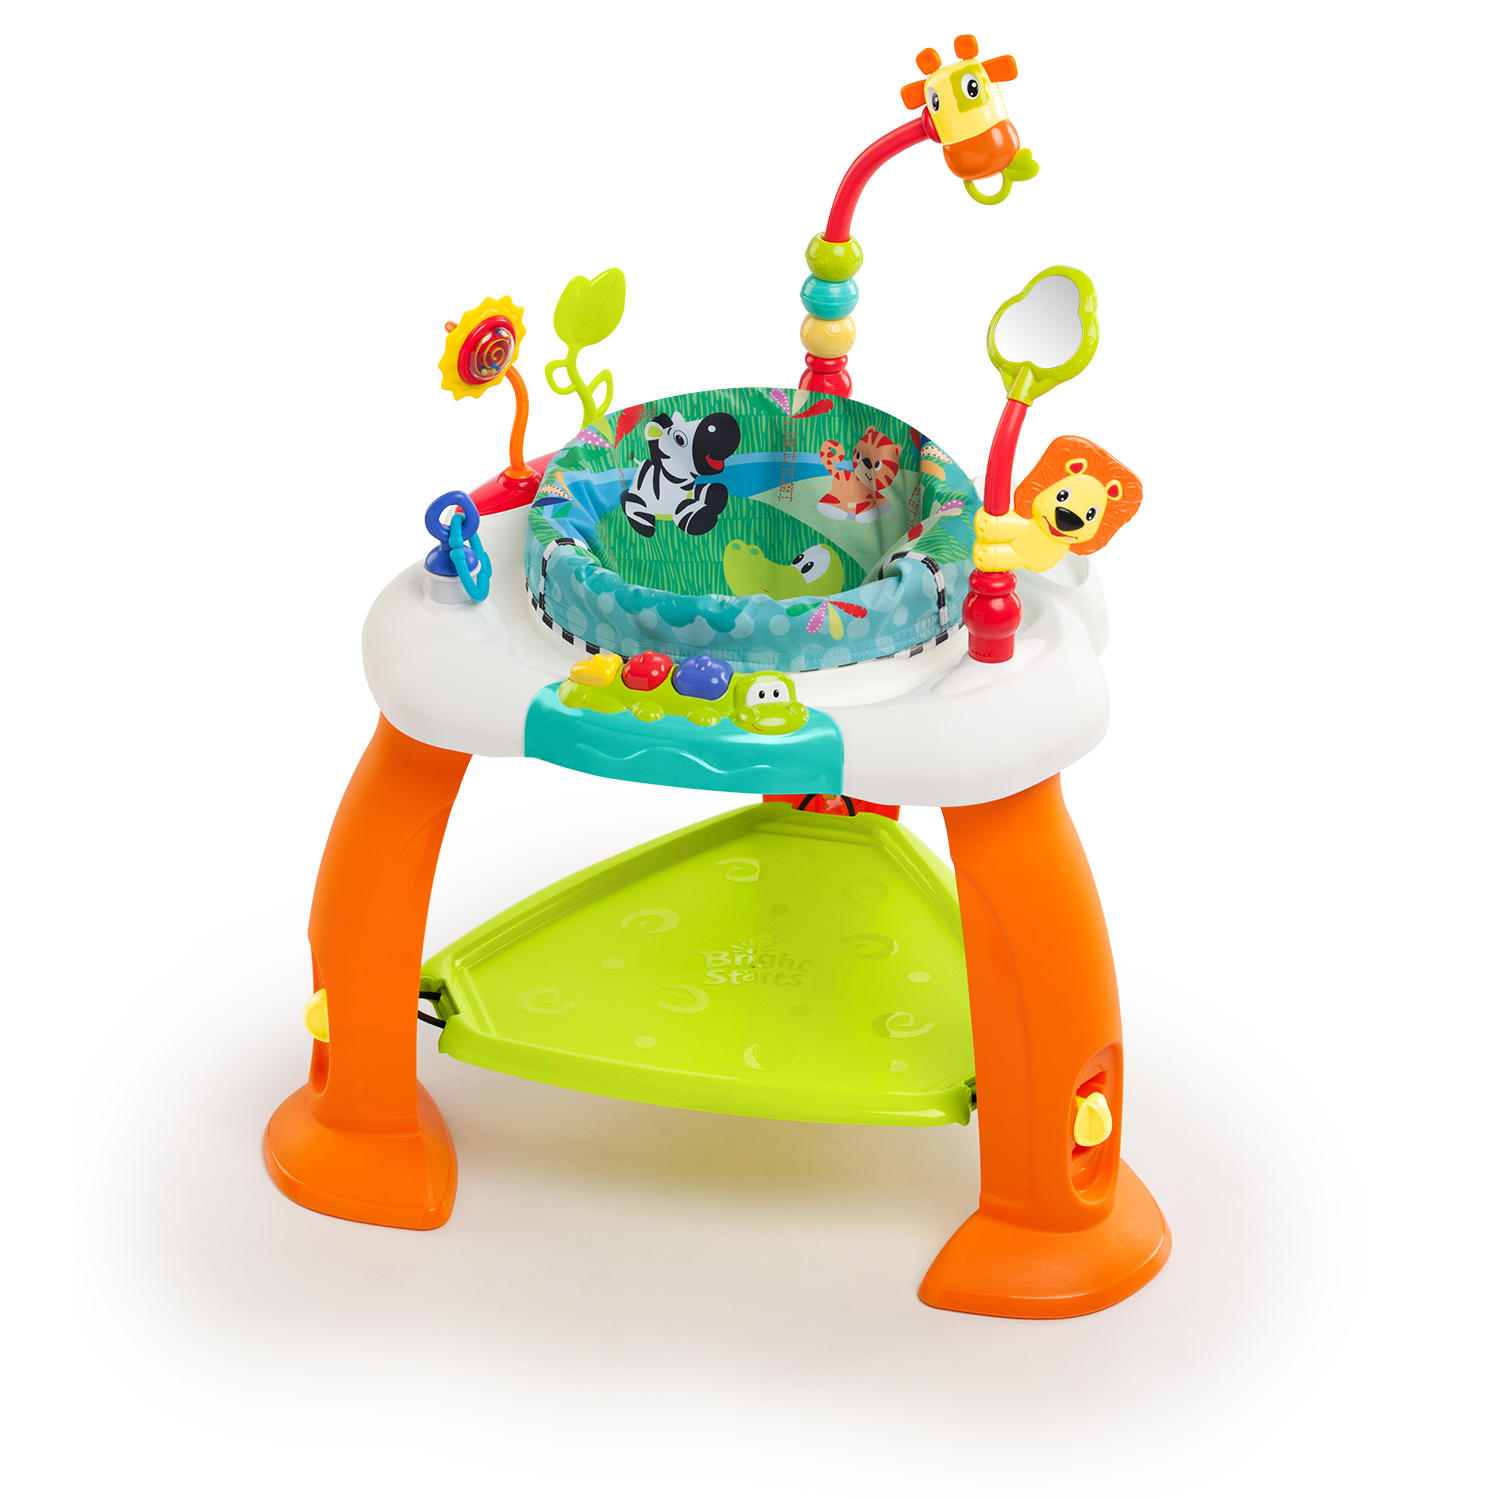 Bright Starts Bounce Bounce Baby Activity Jumper